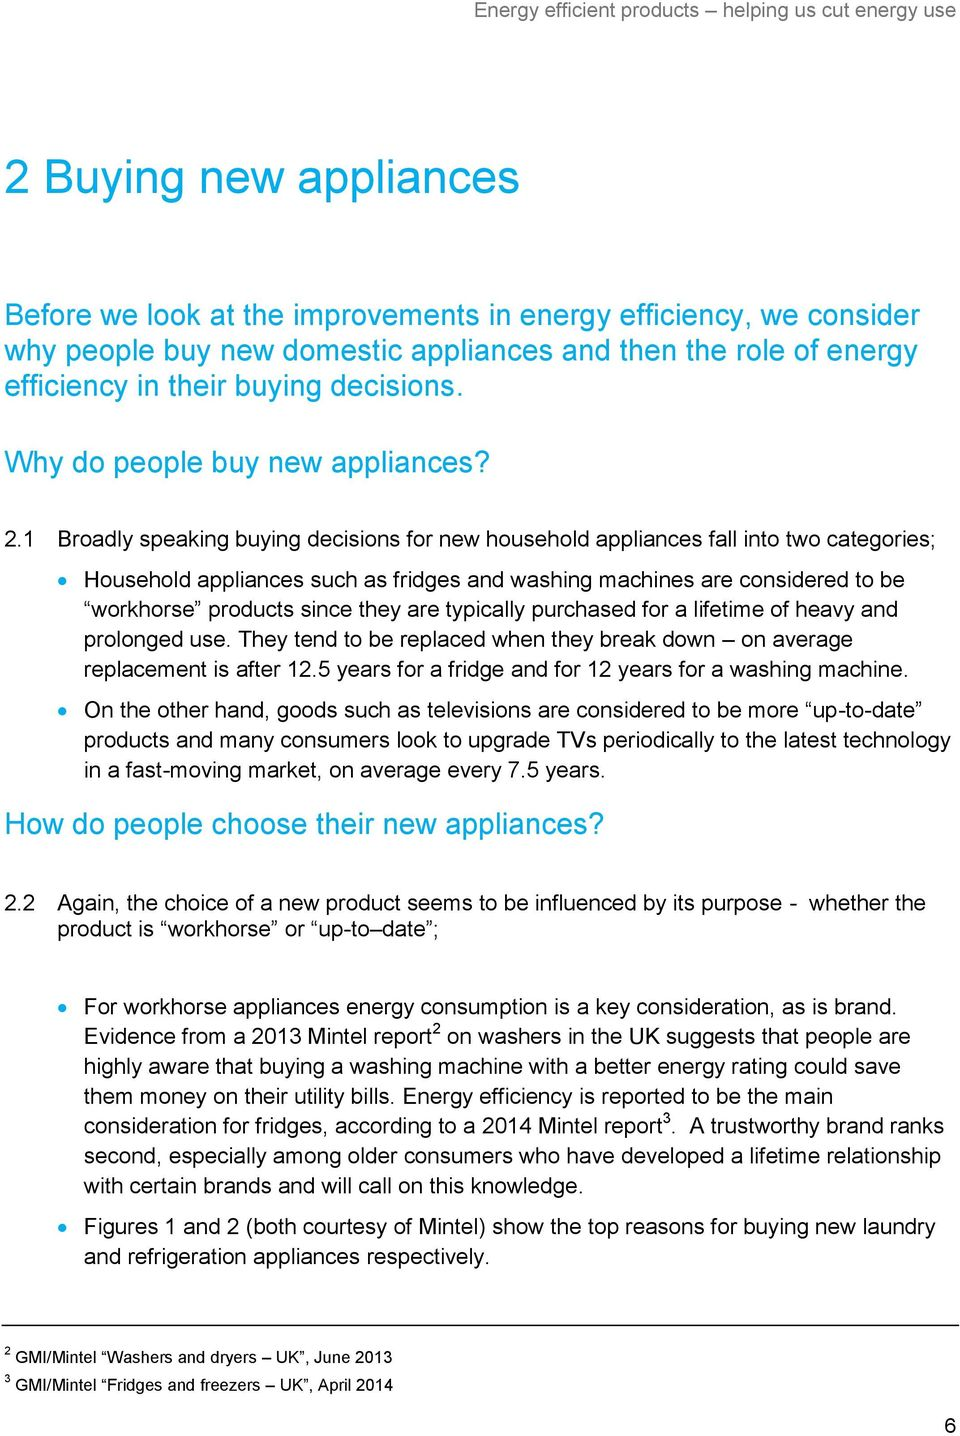 1 Broadly speaking buying decisions for new household appliances fall into two categories; Household appliances such as fridges and washing machines are considered to be workhorse products since they